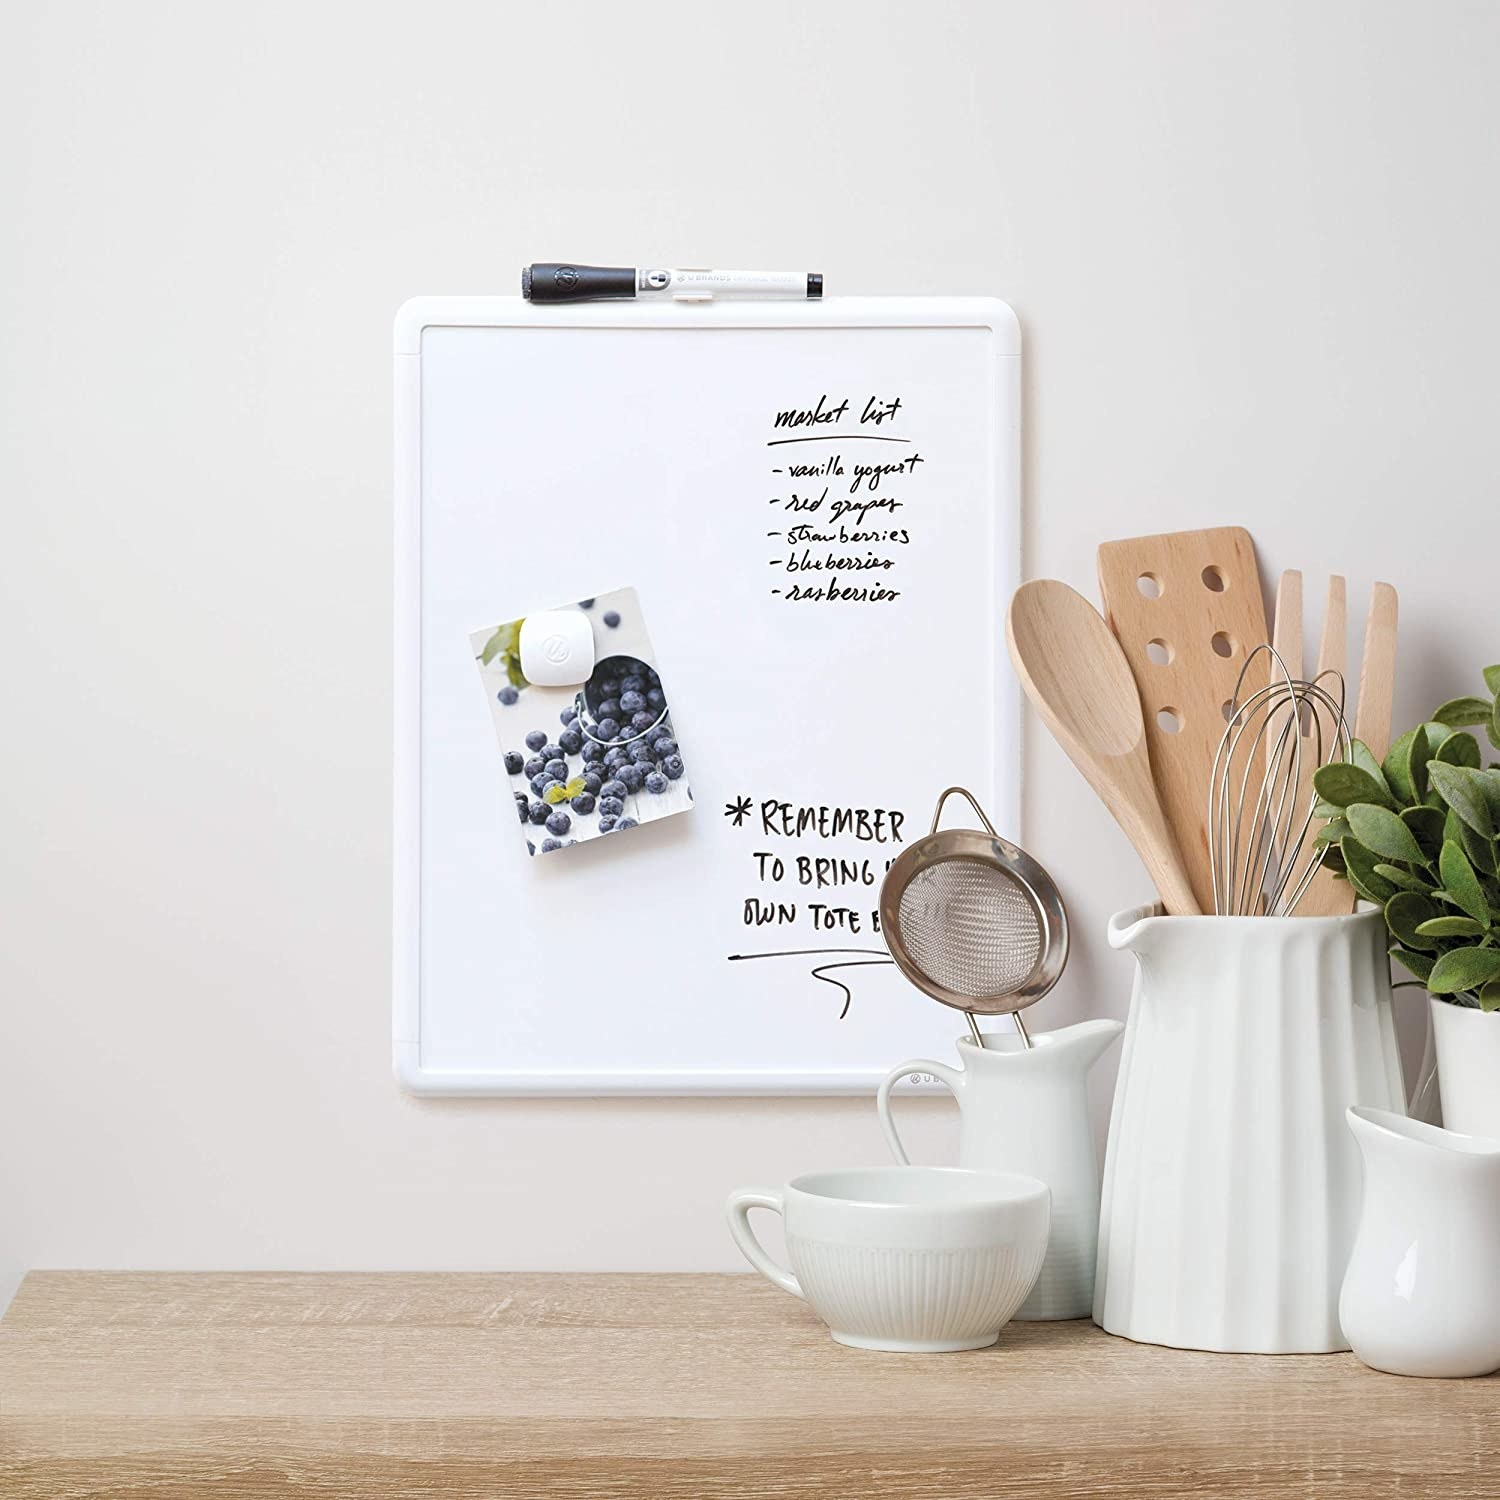 The magnetic board mounted on a kitchen wall